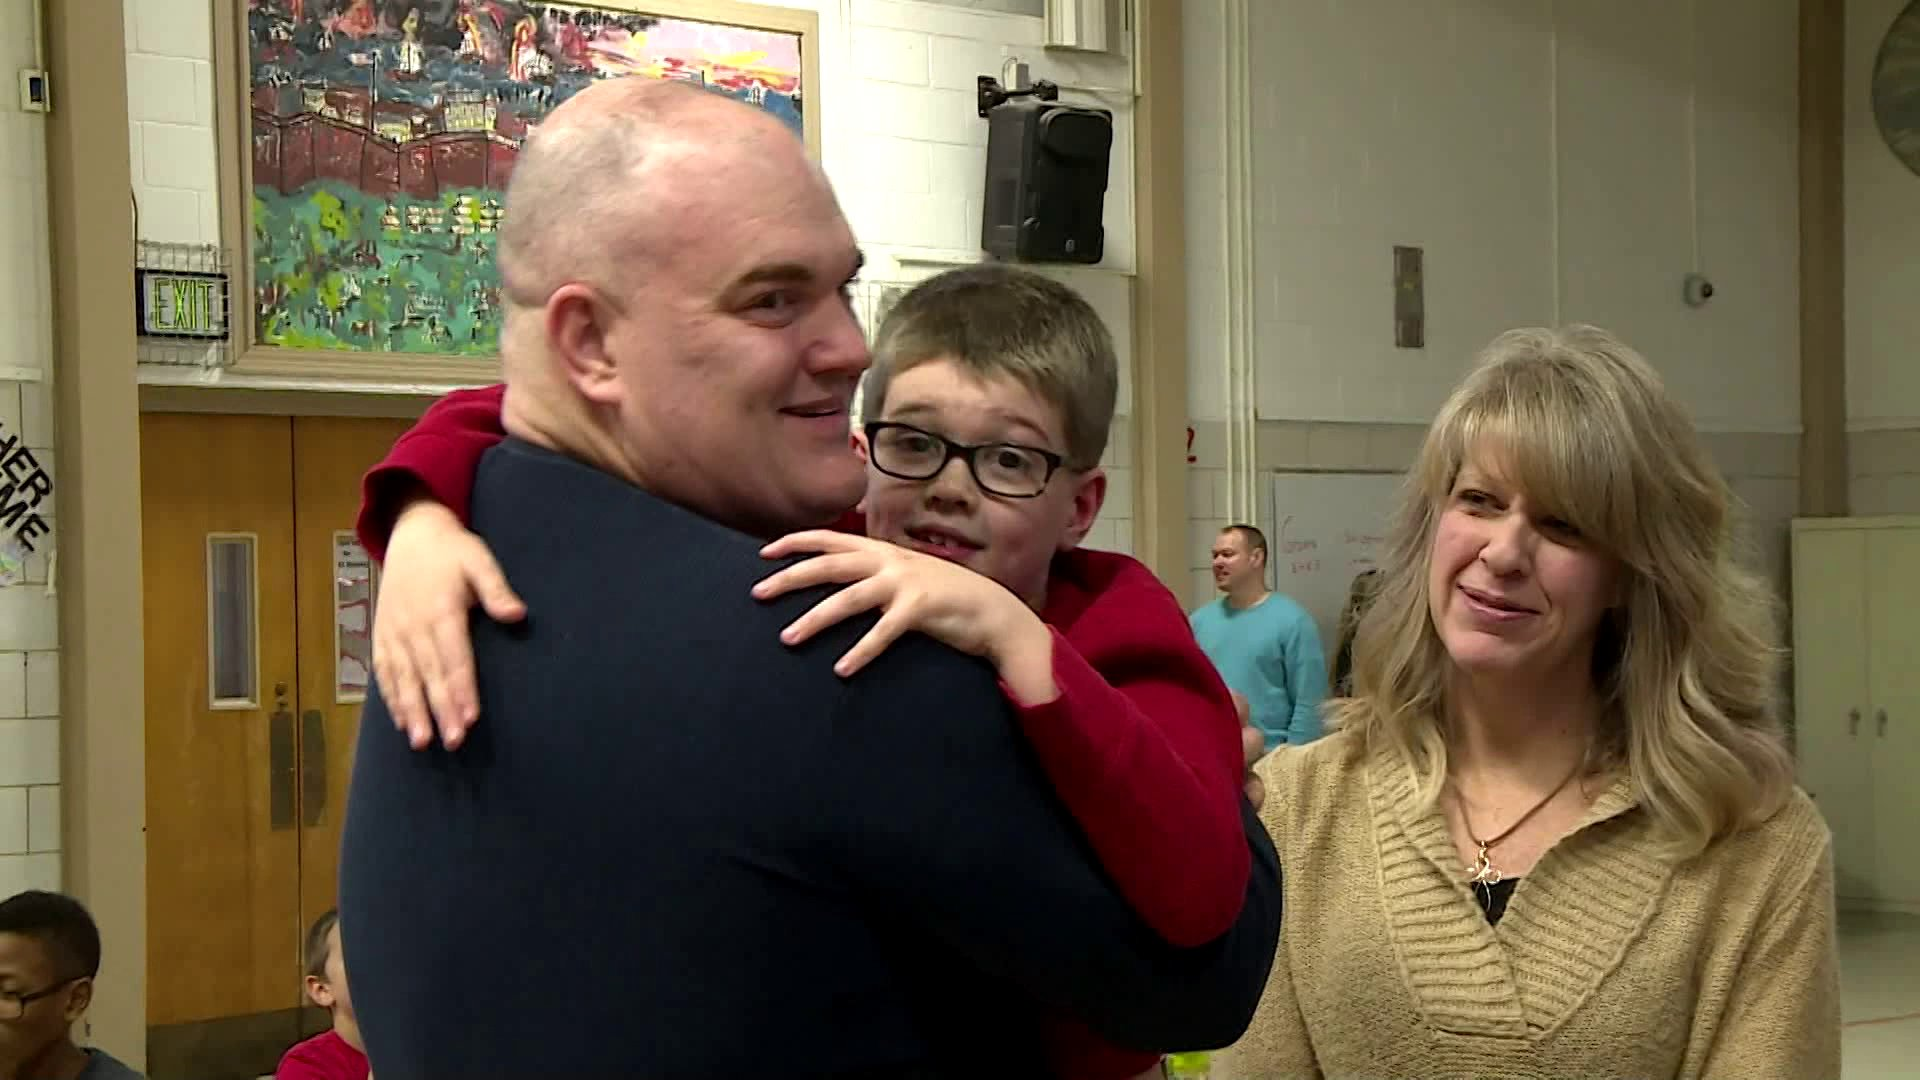 Military Dad Surprises Son During Lunch After Year-Long Deployment